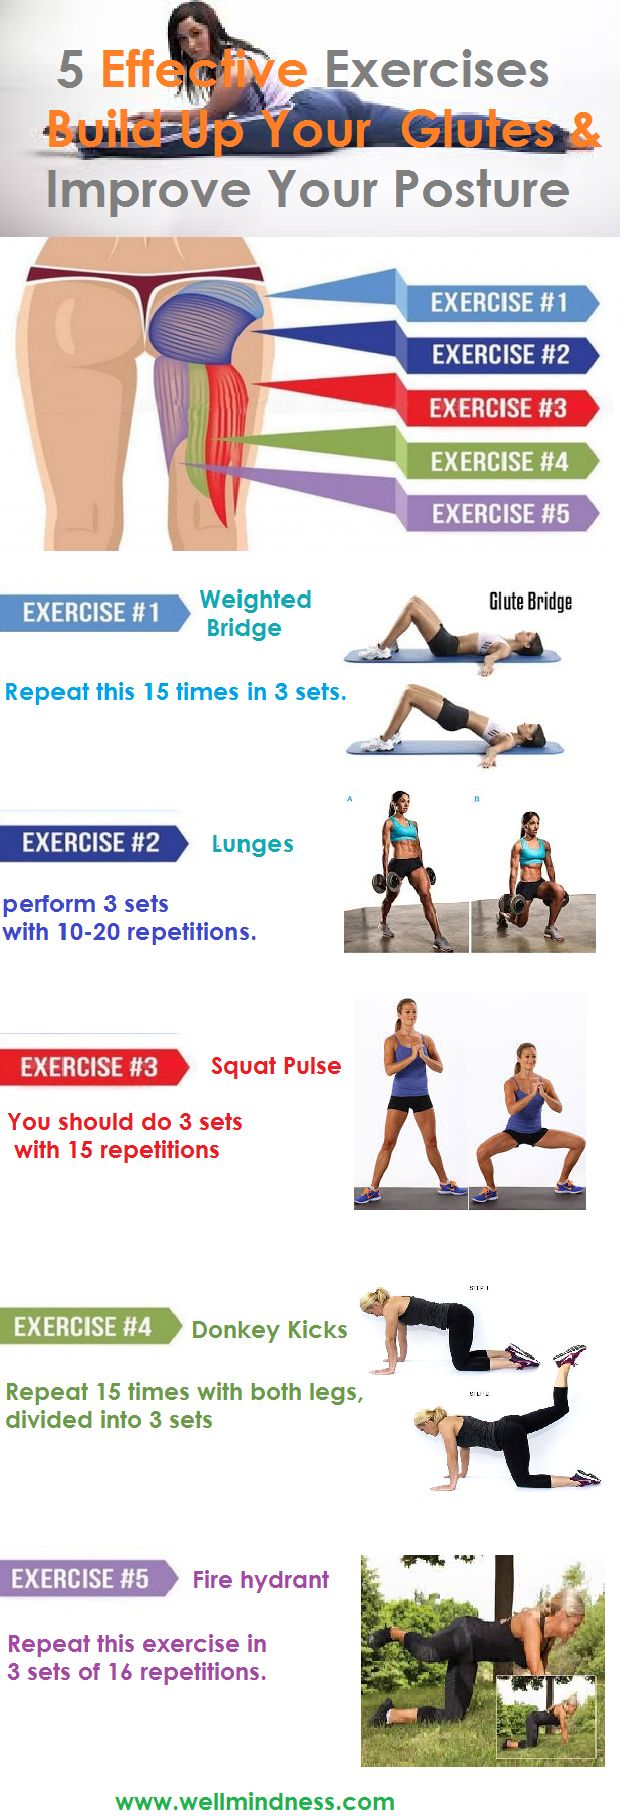 By strengthening the glutes, you will be able to perform high-intensity…